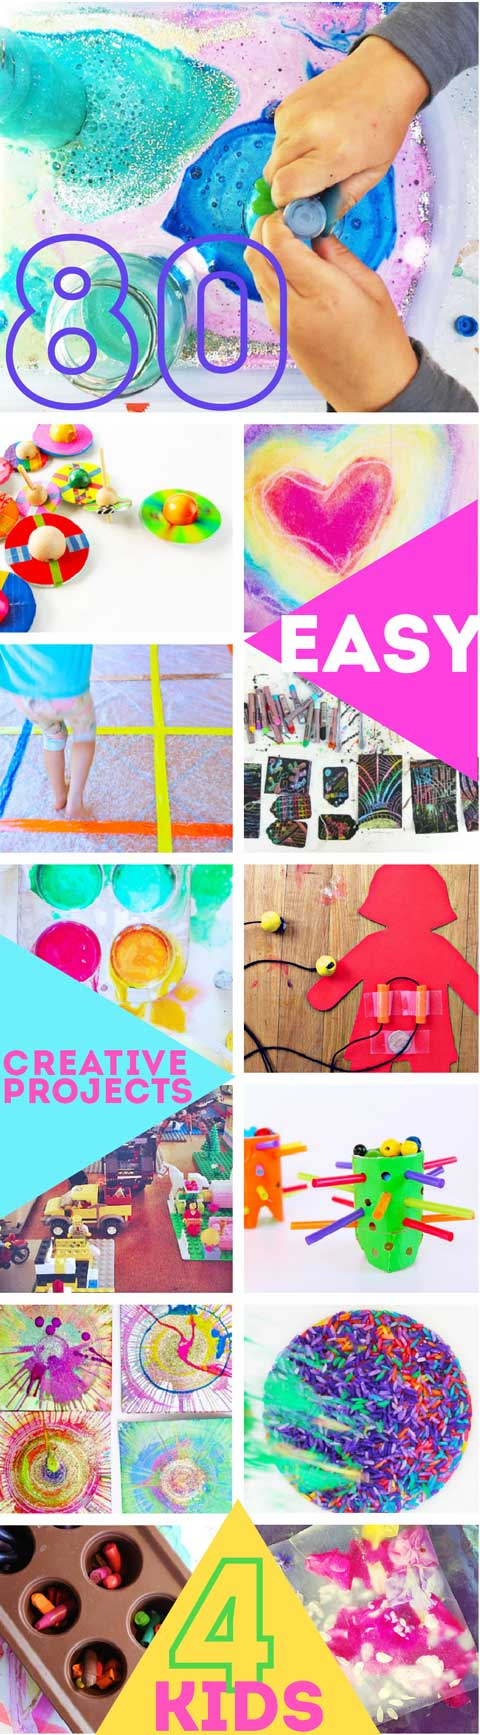 Art And Craft For Preschool 80 Easy Creative Projects For Kids Babble Dabble Do